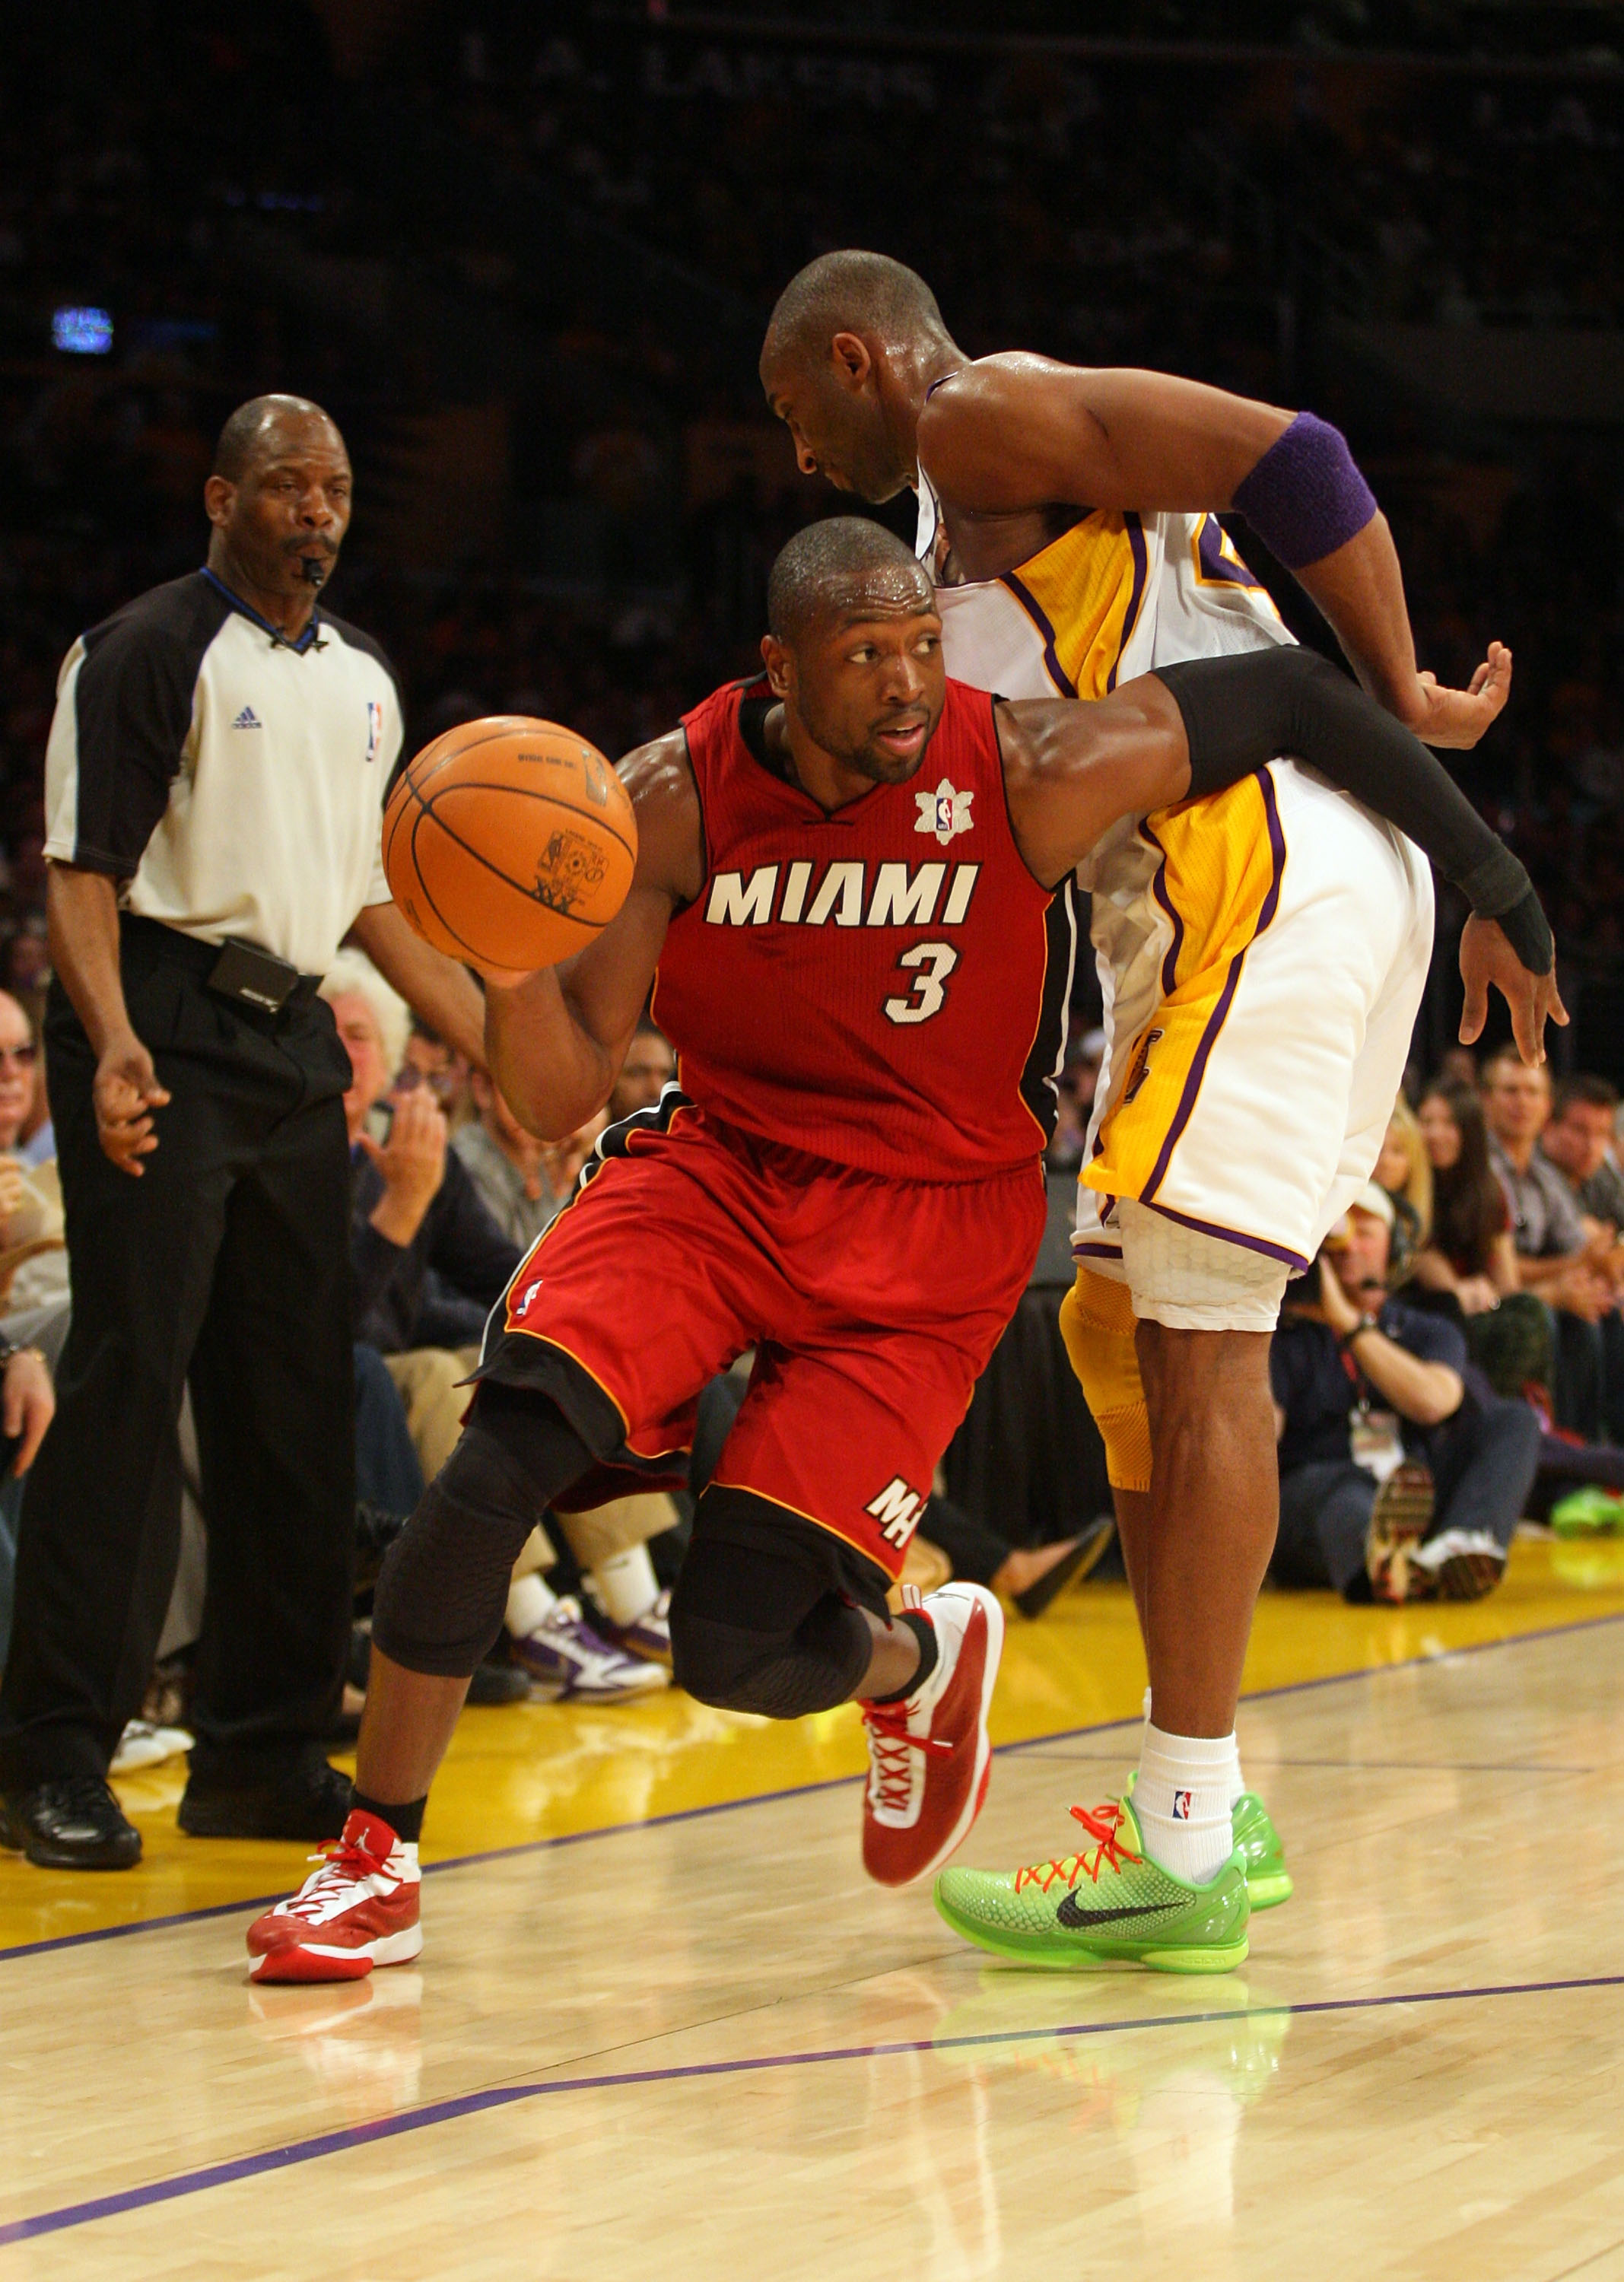 LOS ANGELES, CA - DECEMBER 25:  Dwyane Wade #3 of the Miami Heat dribbles the ball to the basket as Kobe Bryant #24 of the Los Angeles Lakers gets called for a blocking foul during the NBA game at Staples Center on December 25, 2010 in Los Angeles, Califo